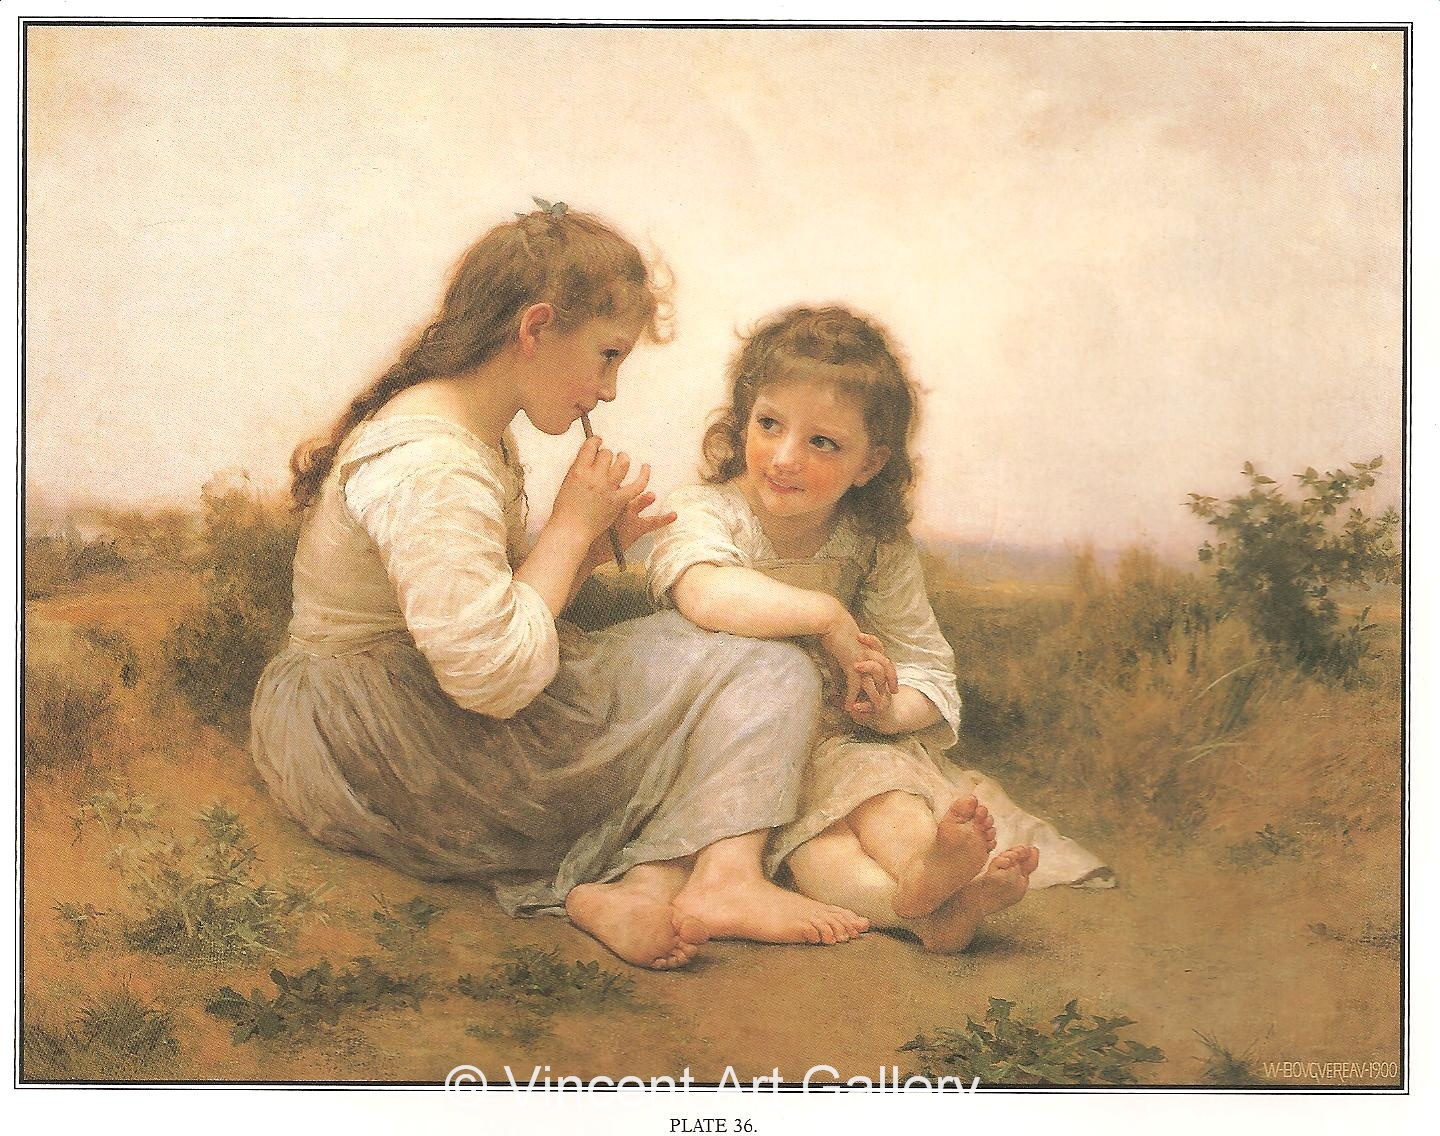 A1392, BOUGUEREAU, Two Girls, Childhood Idyll